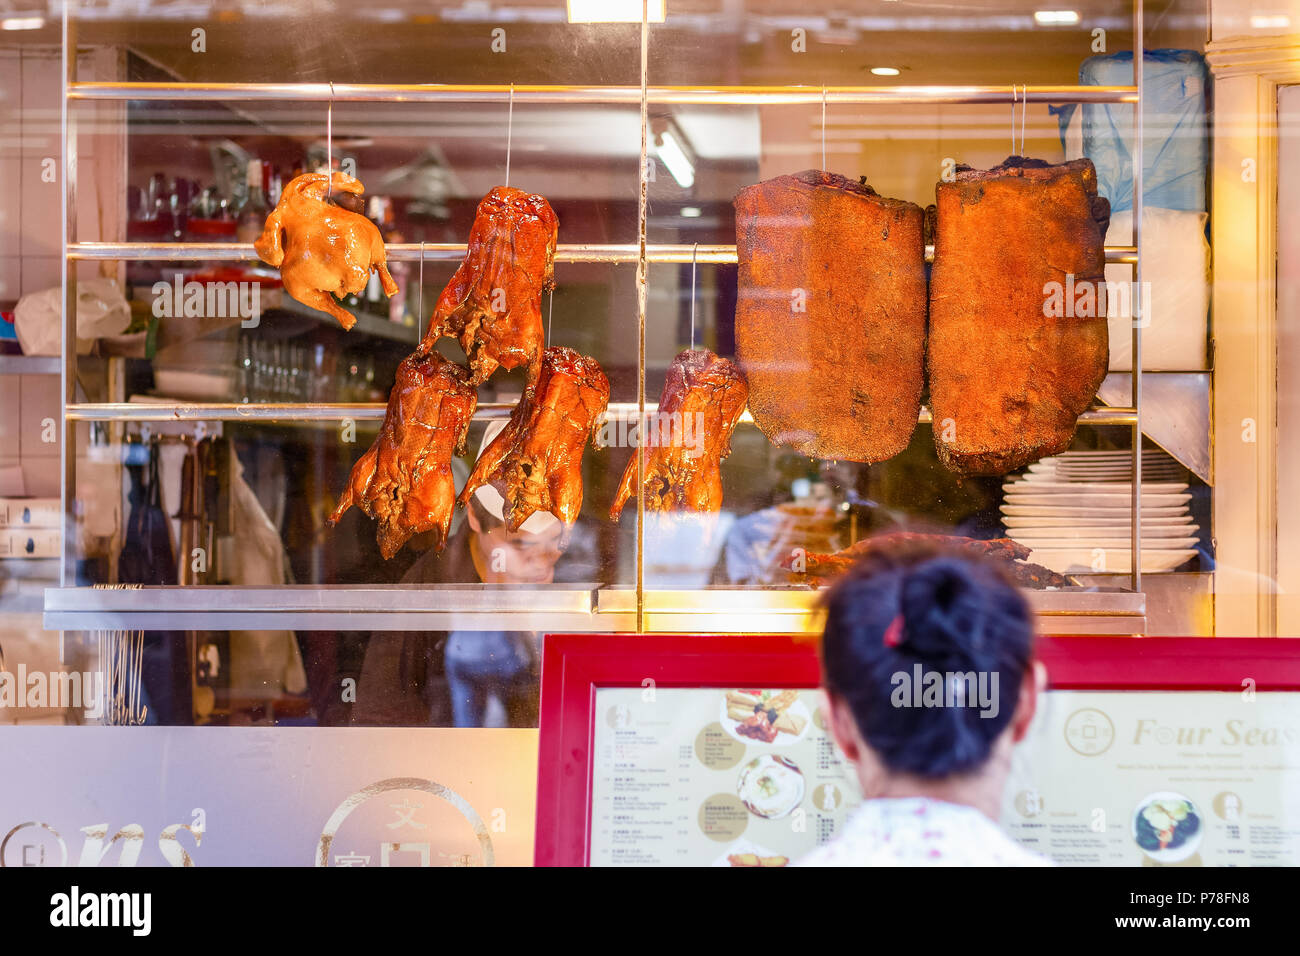 London, UK - June 22, 2018 - A tourist is reading the menu outside Four Seasons restaurant, famous for the crispy duck, in London Chinatown - Stock Image